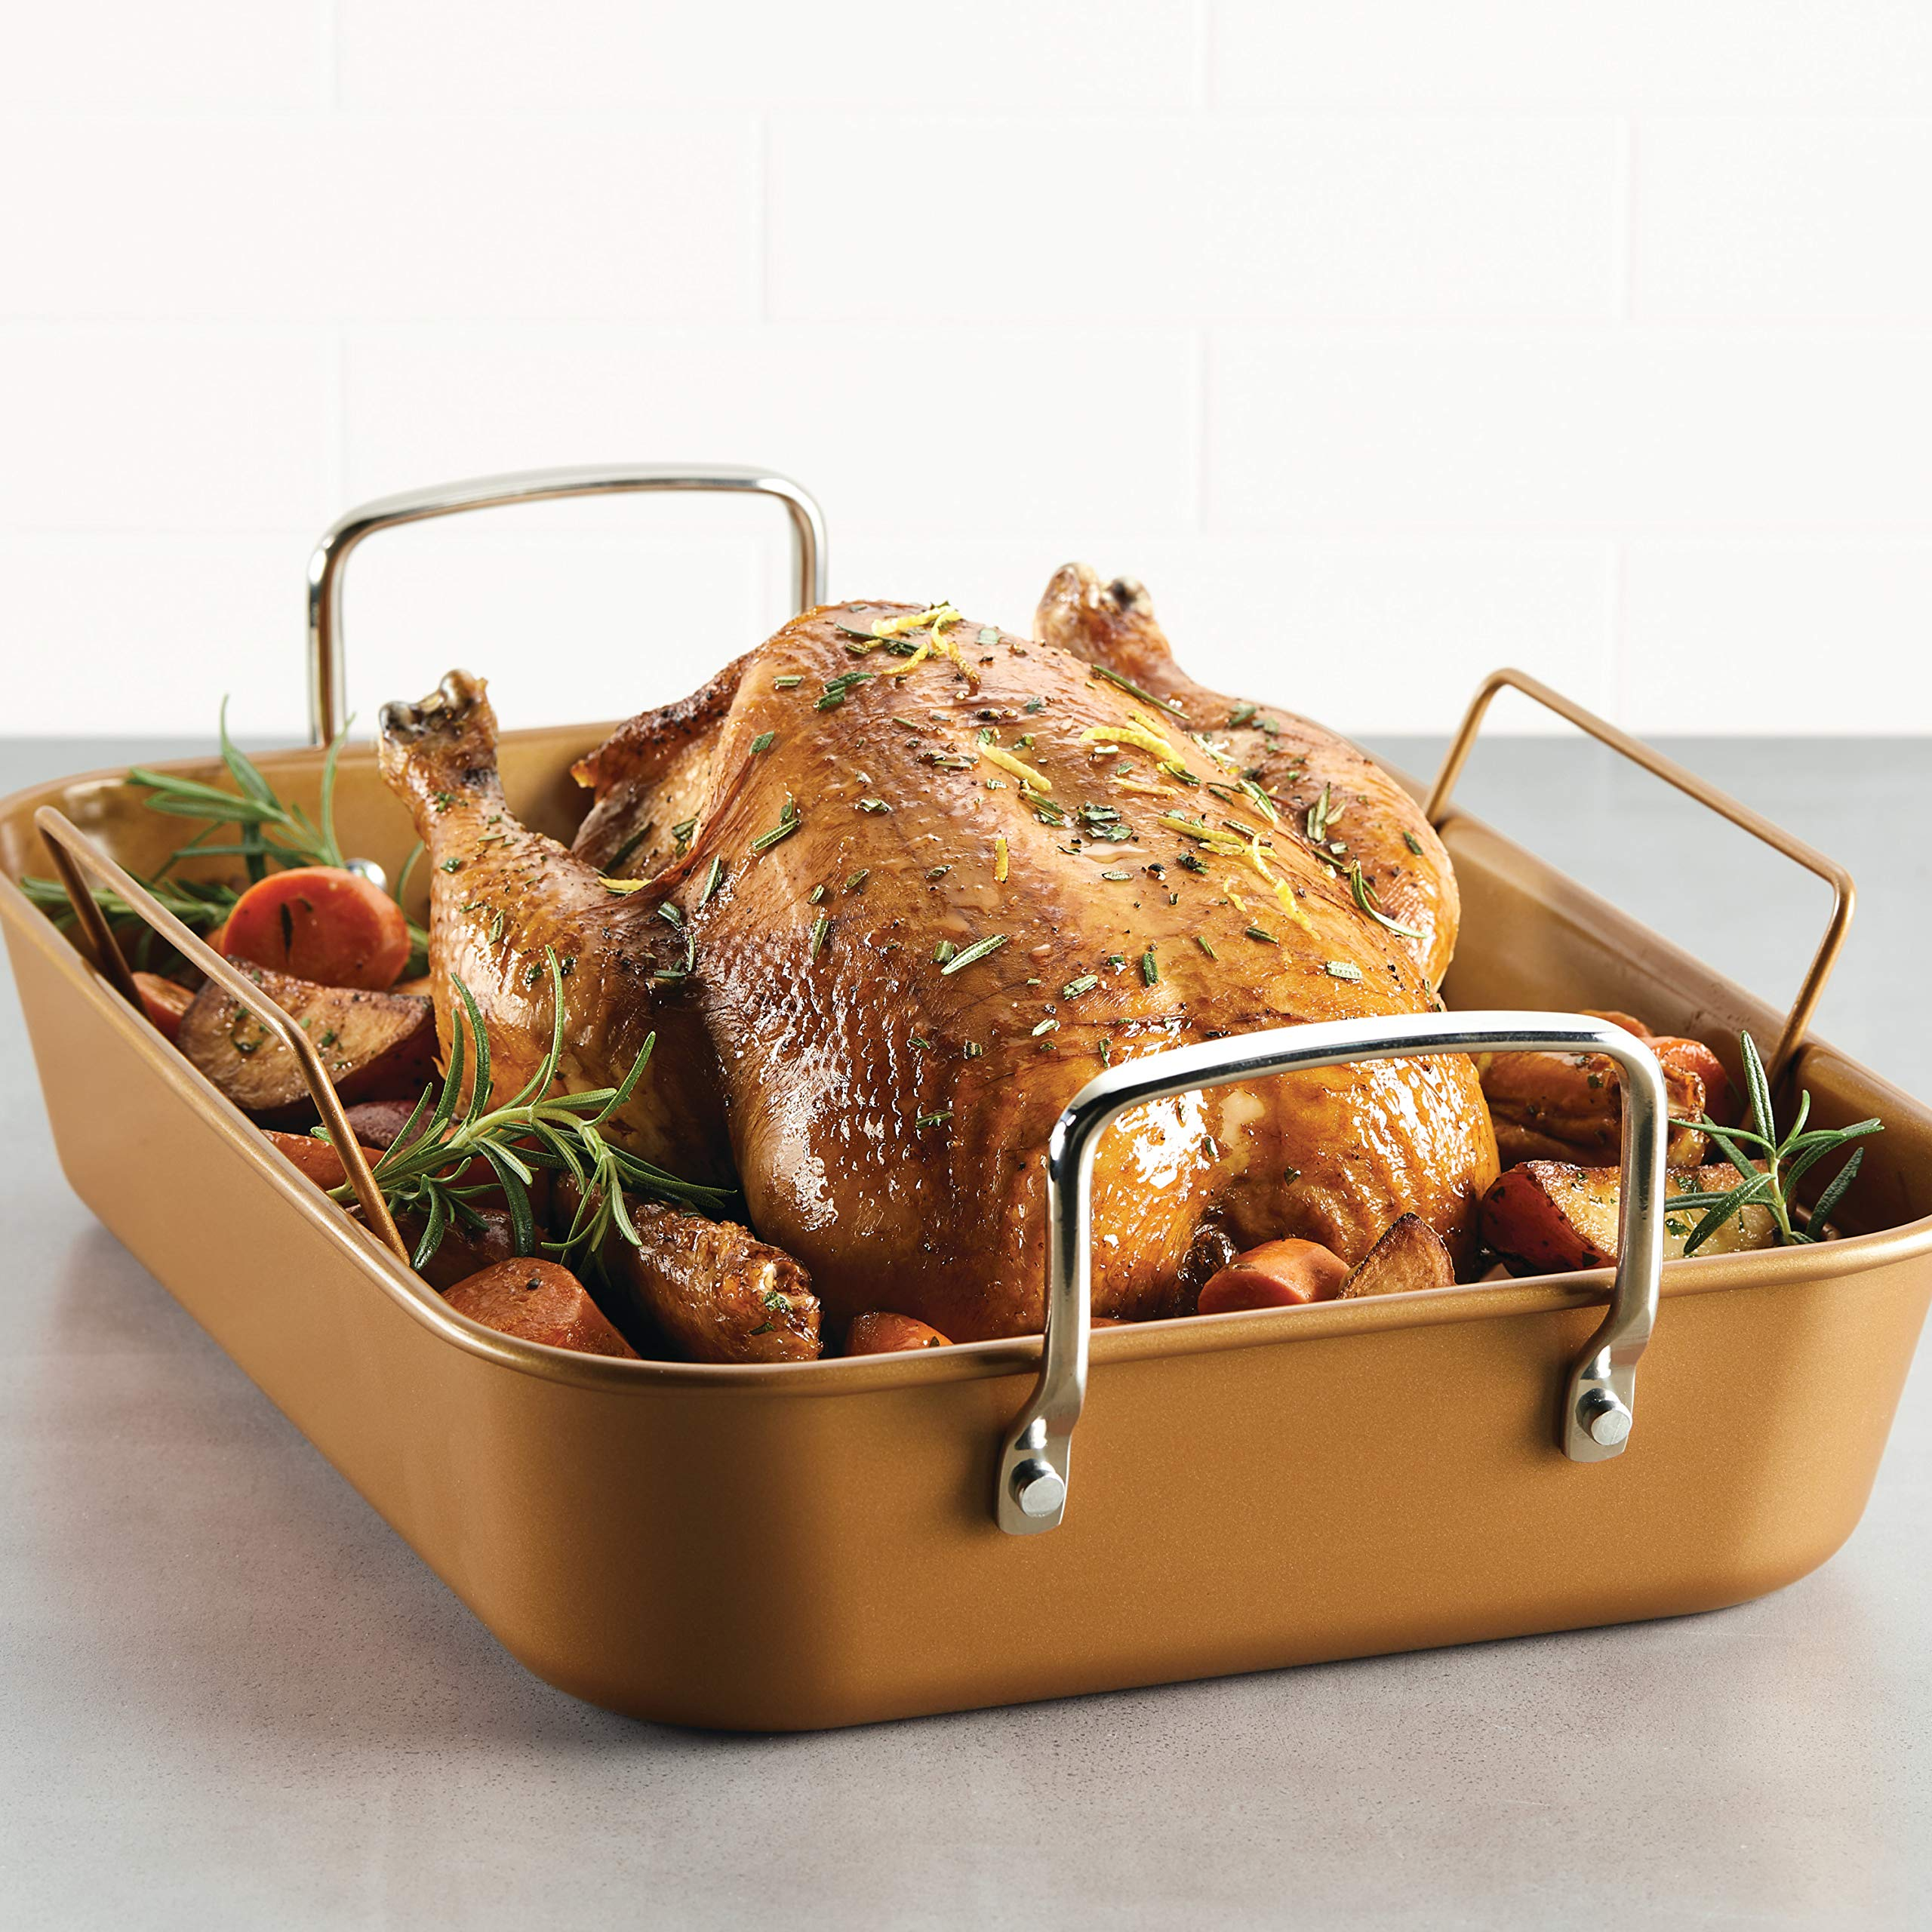 Ayesha Curry 47792 11'' x 15'' Rack Steel Roaster, 11 Inch x 15 Inch, Copper by Ayesha Curry Kitchenware (Image #2)